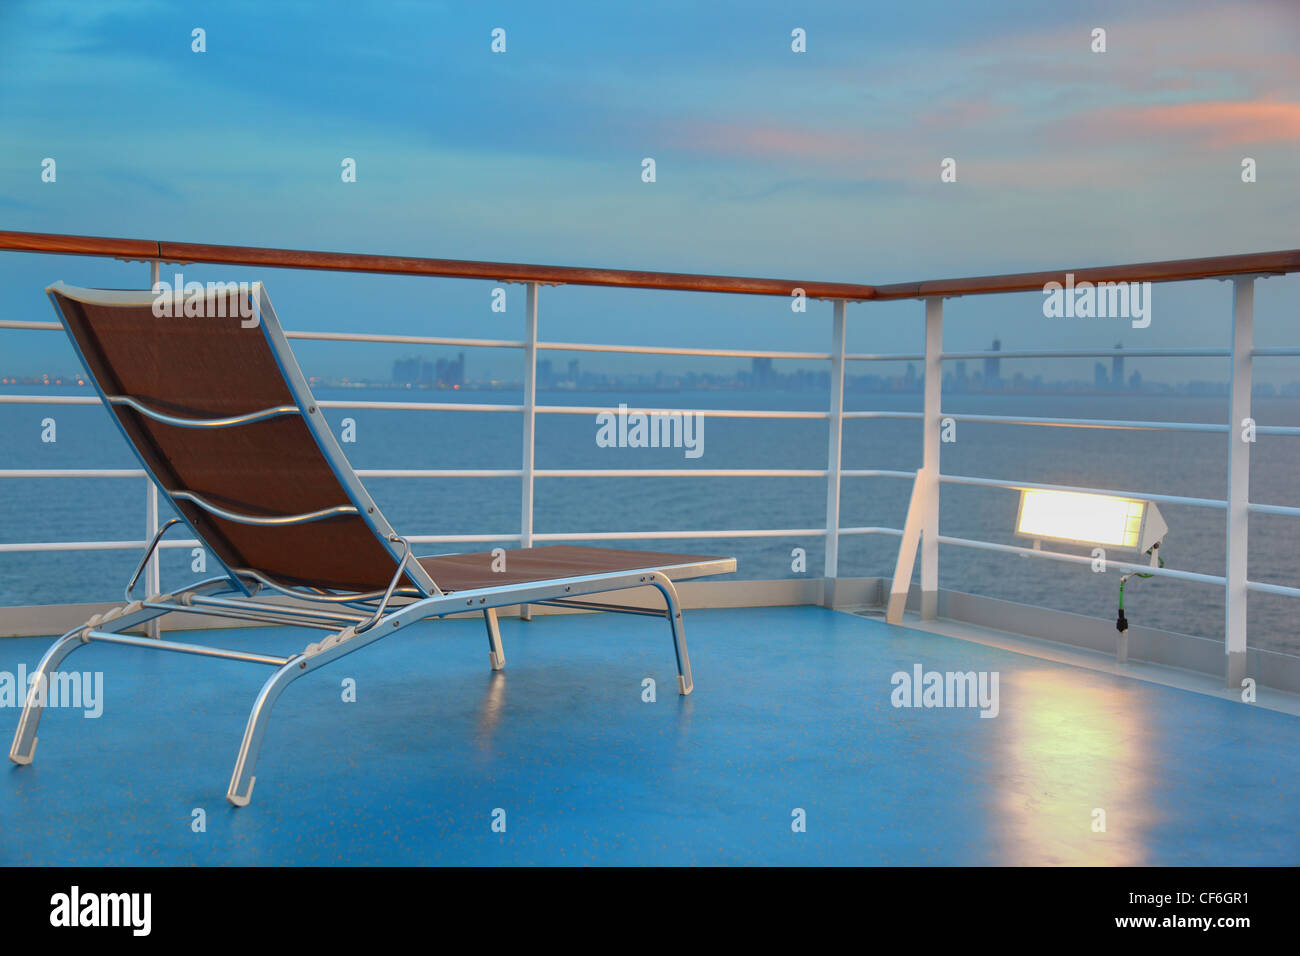 Illuminated solitary deck-chair on ship overlooking city at evening - Stock Image